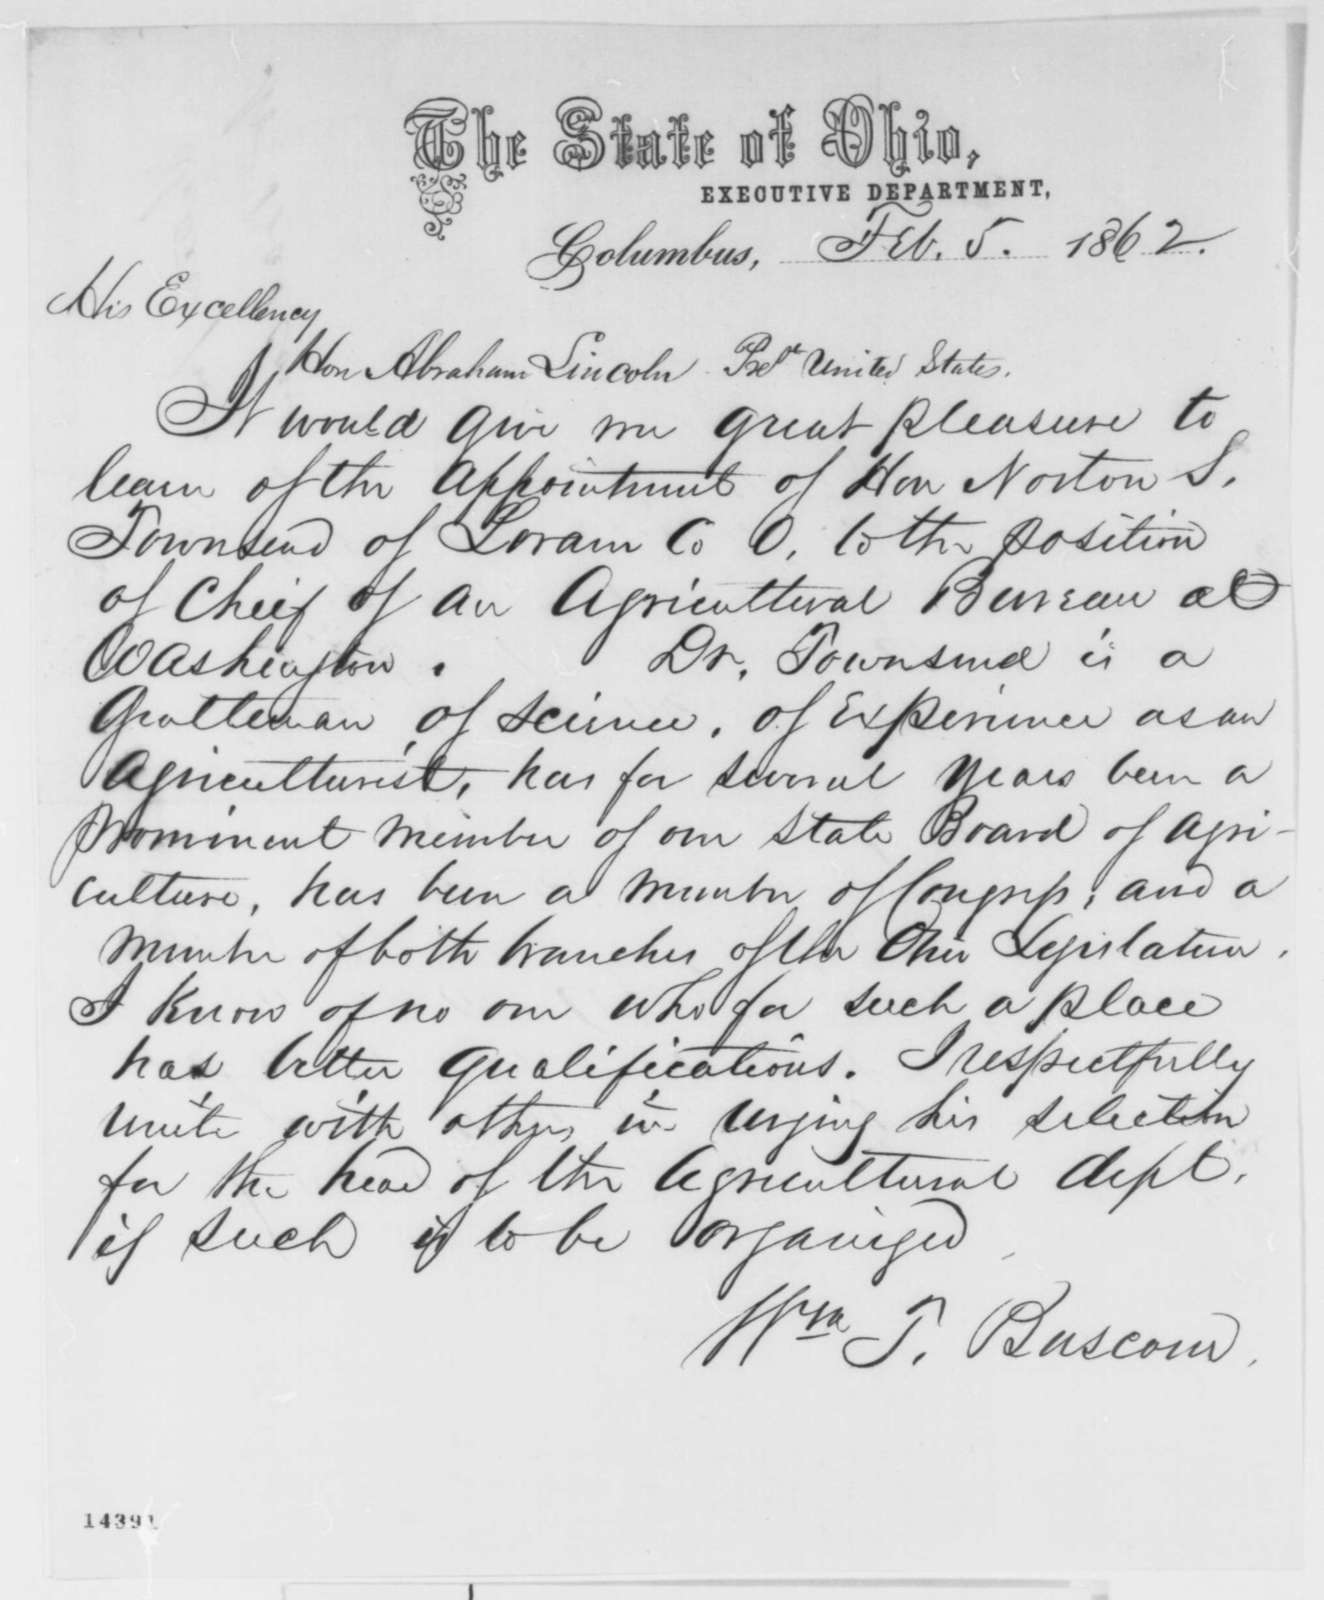 William T. Bascom to Abraham Lincoln, Wednesday, February 05, 1862  (Recommendation)